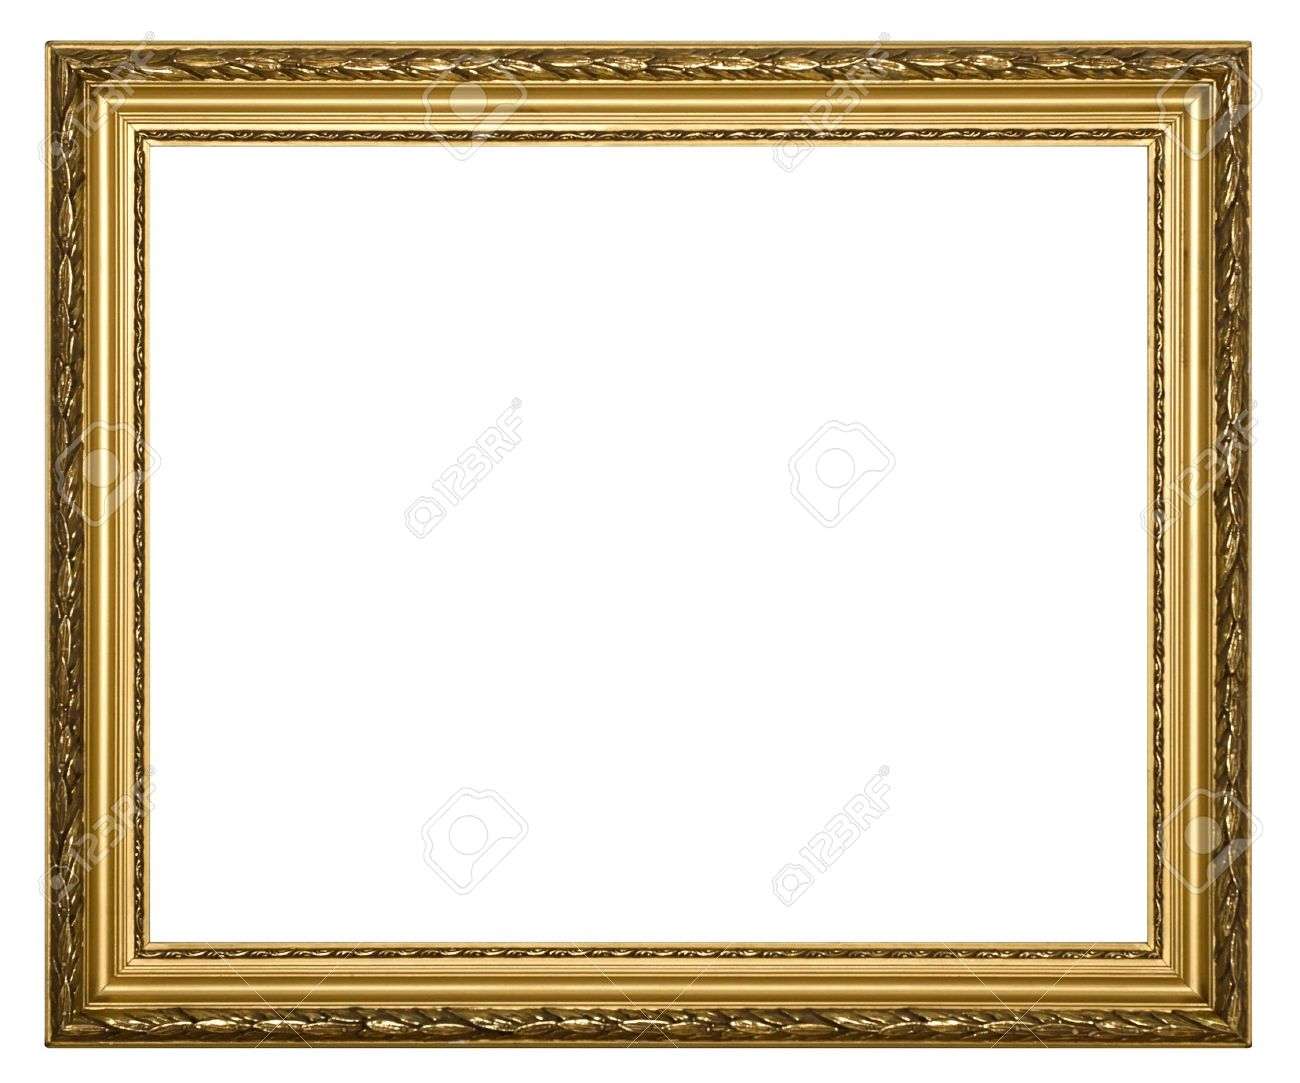 Frame For Painting On A White Background. Stock Photo, Picture And ...